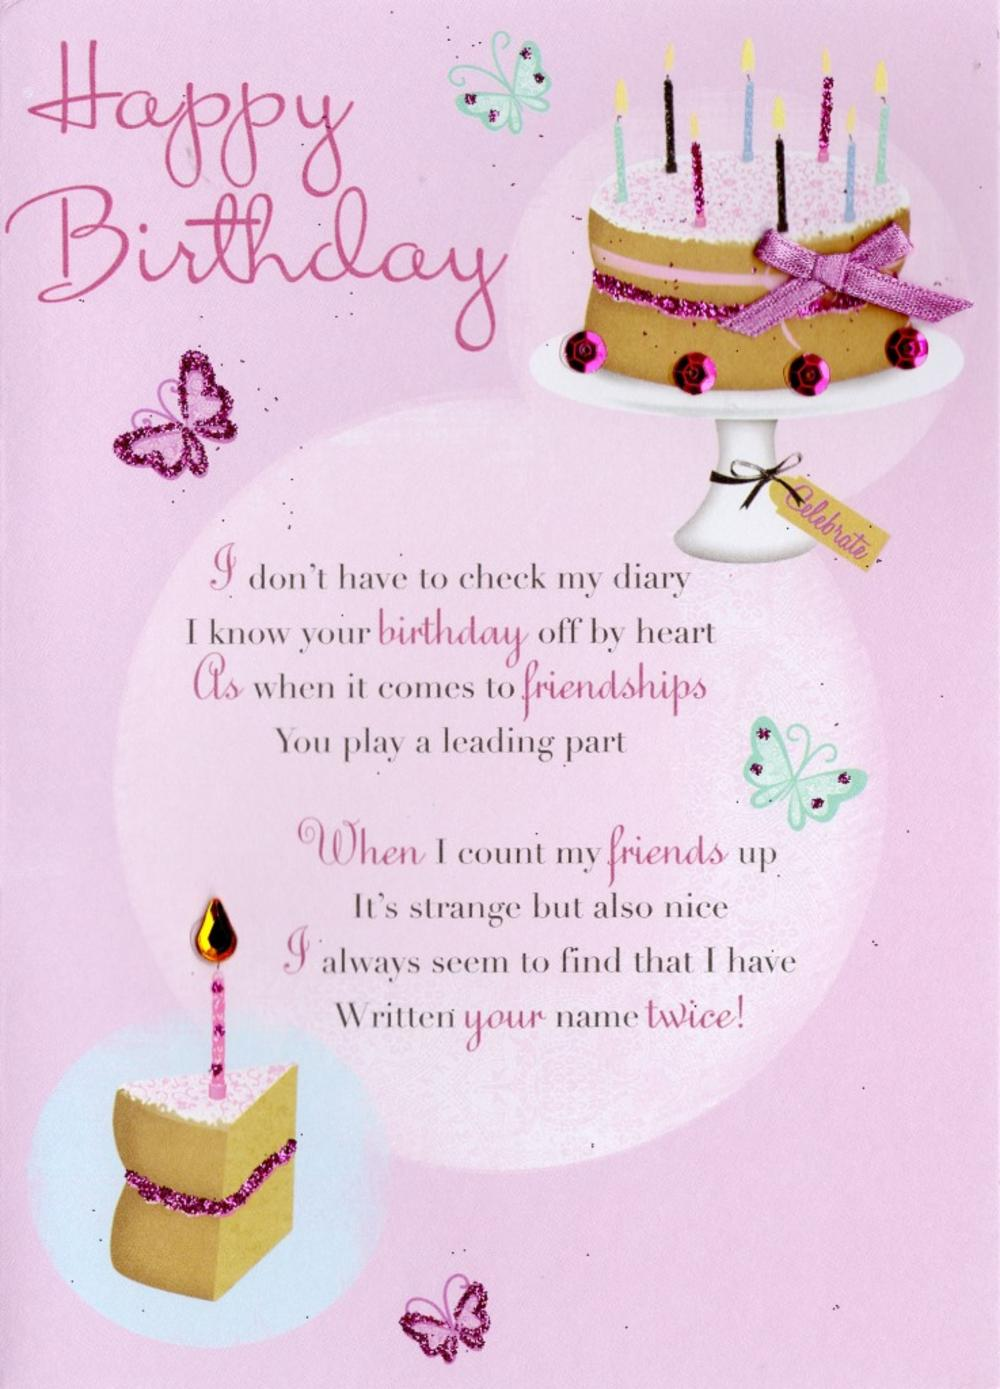 Friend Happy Birthday Greeting Card Cards Love Kates